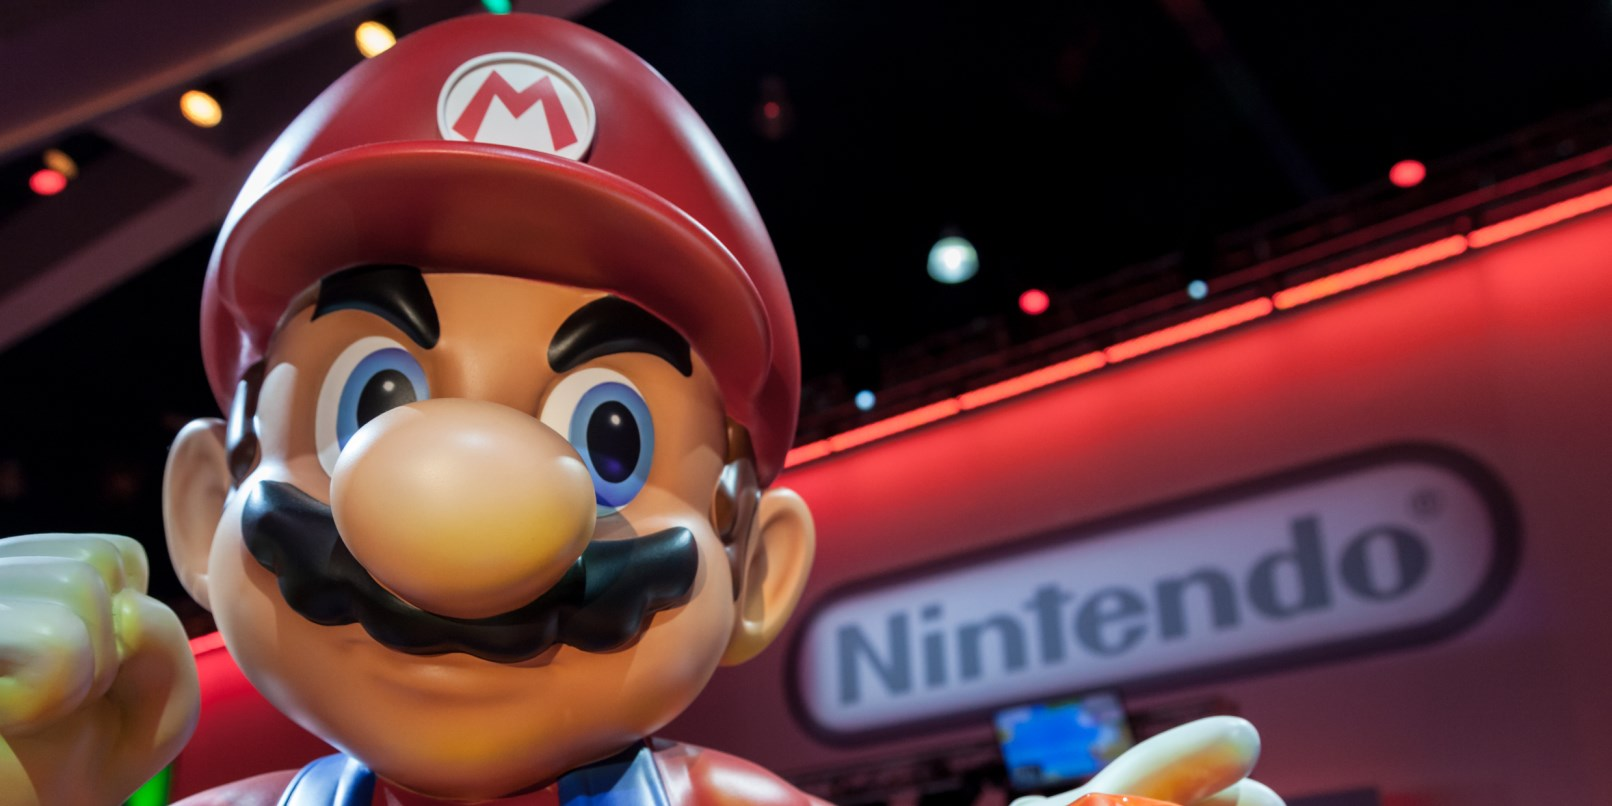 Nintendo seems to be striking its music off YouTube, and that sucks